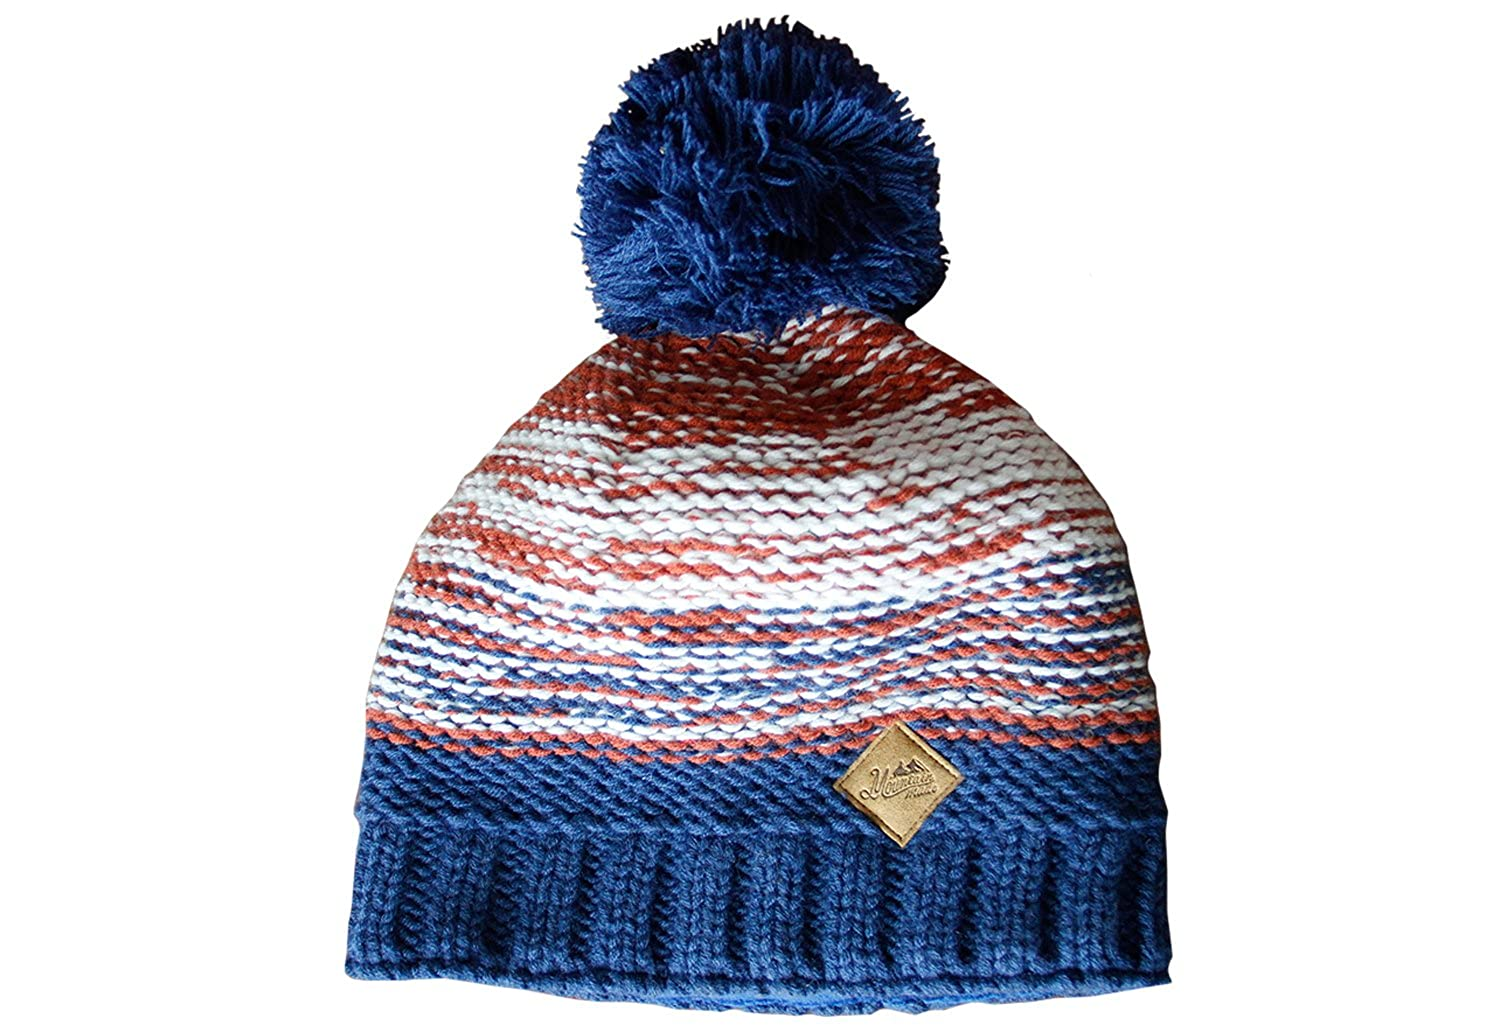 c06c8b1a992 Mountain Made Winter Striped Beanie Hat (Blue Orange) at Amazon Men s  Clothing store